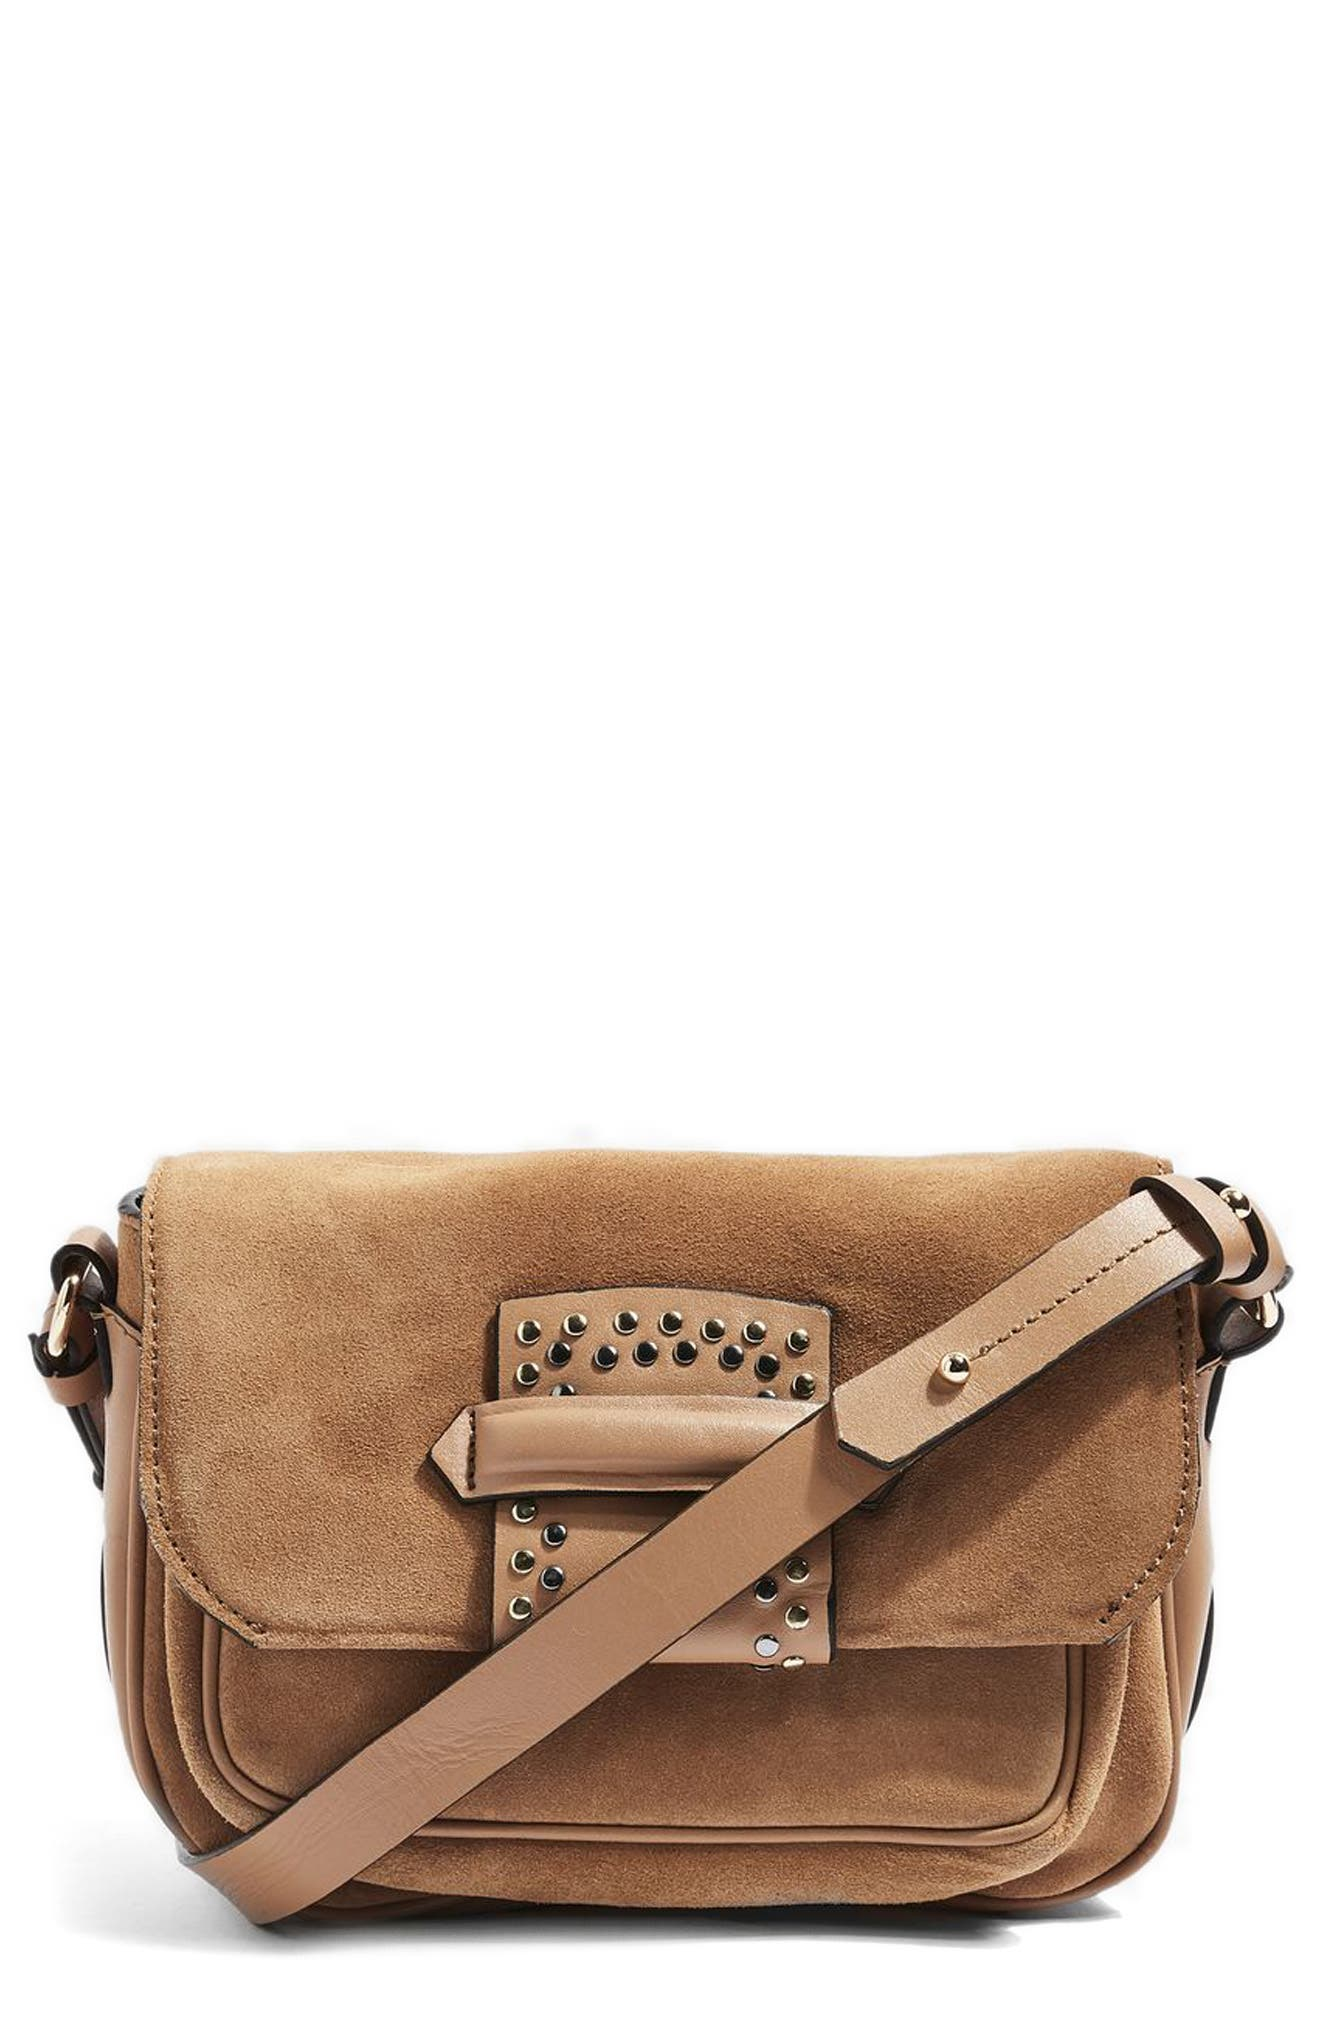 Topshop Premium Leather & Suede Crossbody Bag